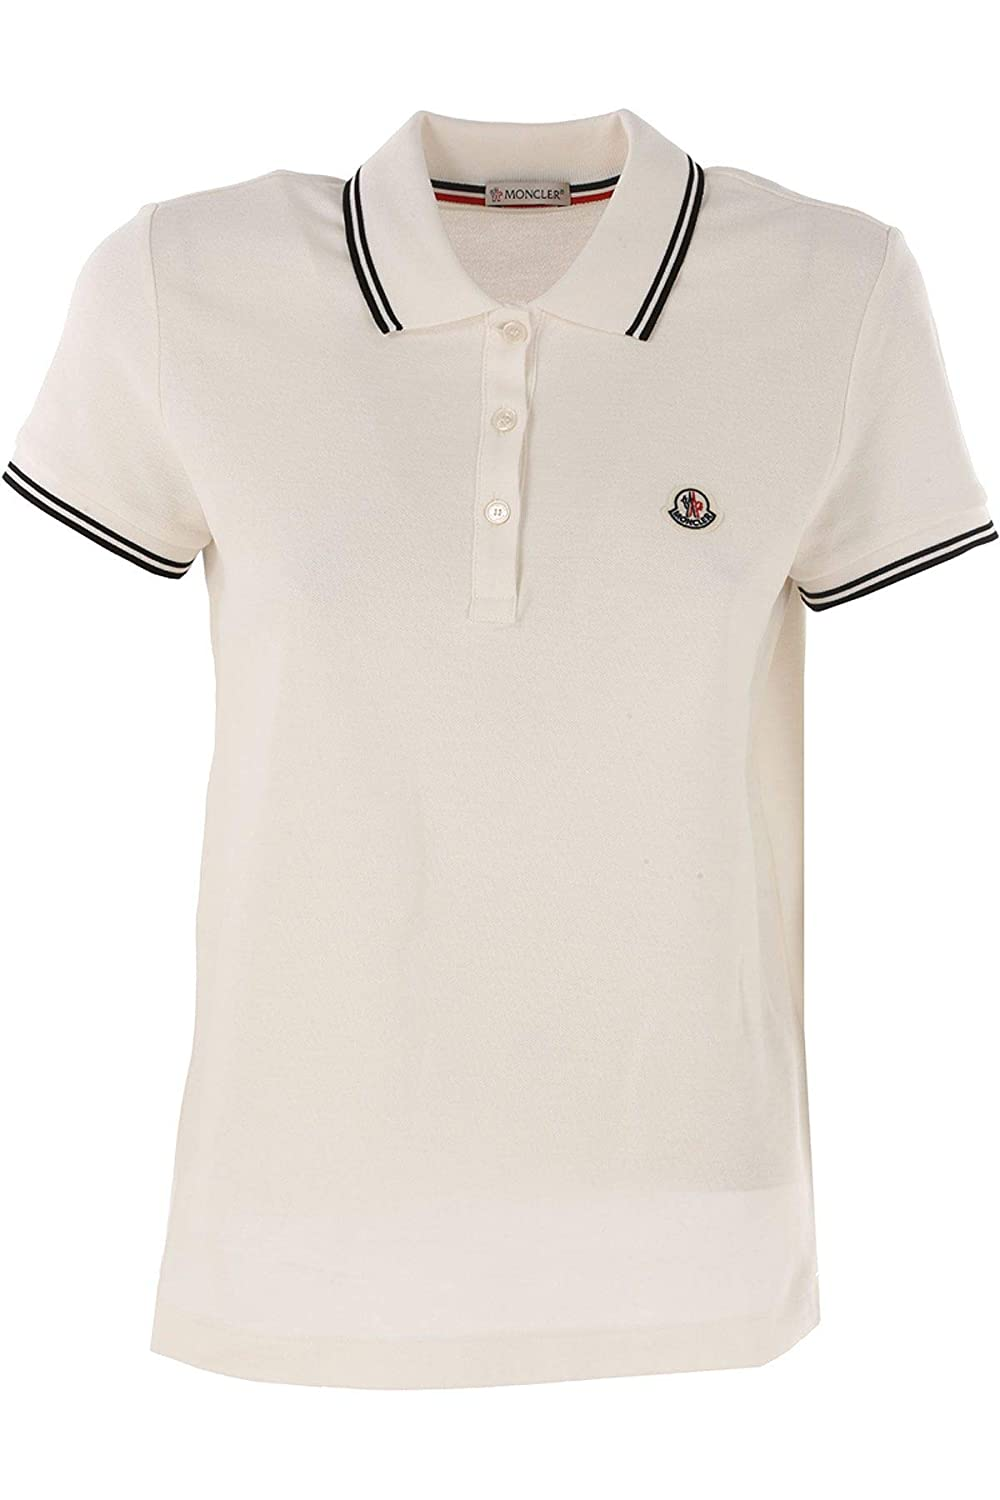 Moncler Women's 838600084667034 White Cotton Polo Shirt